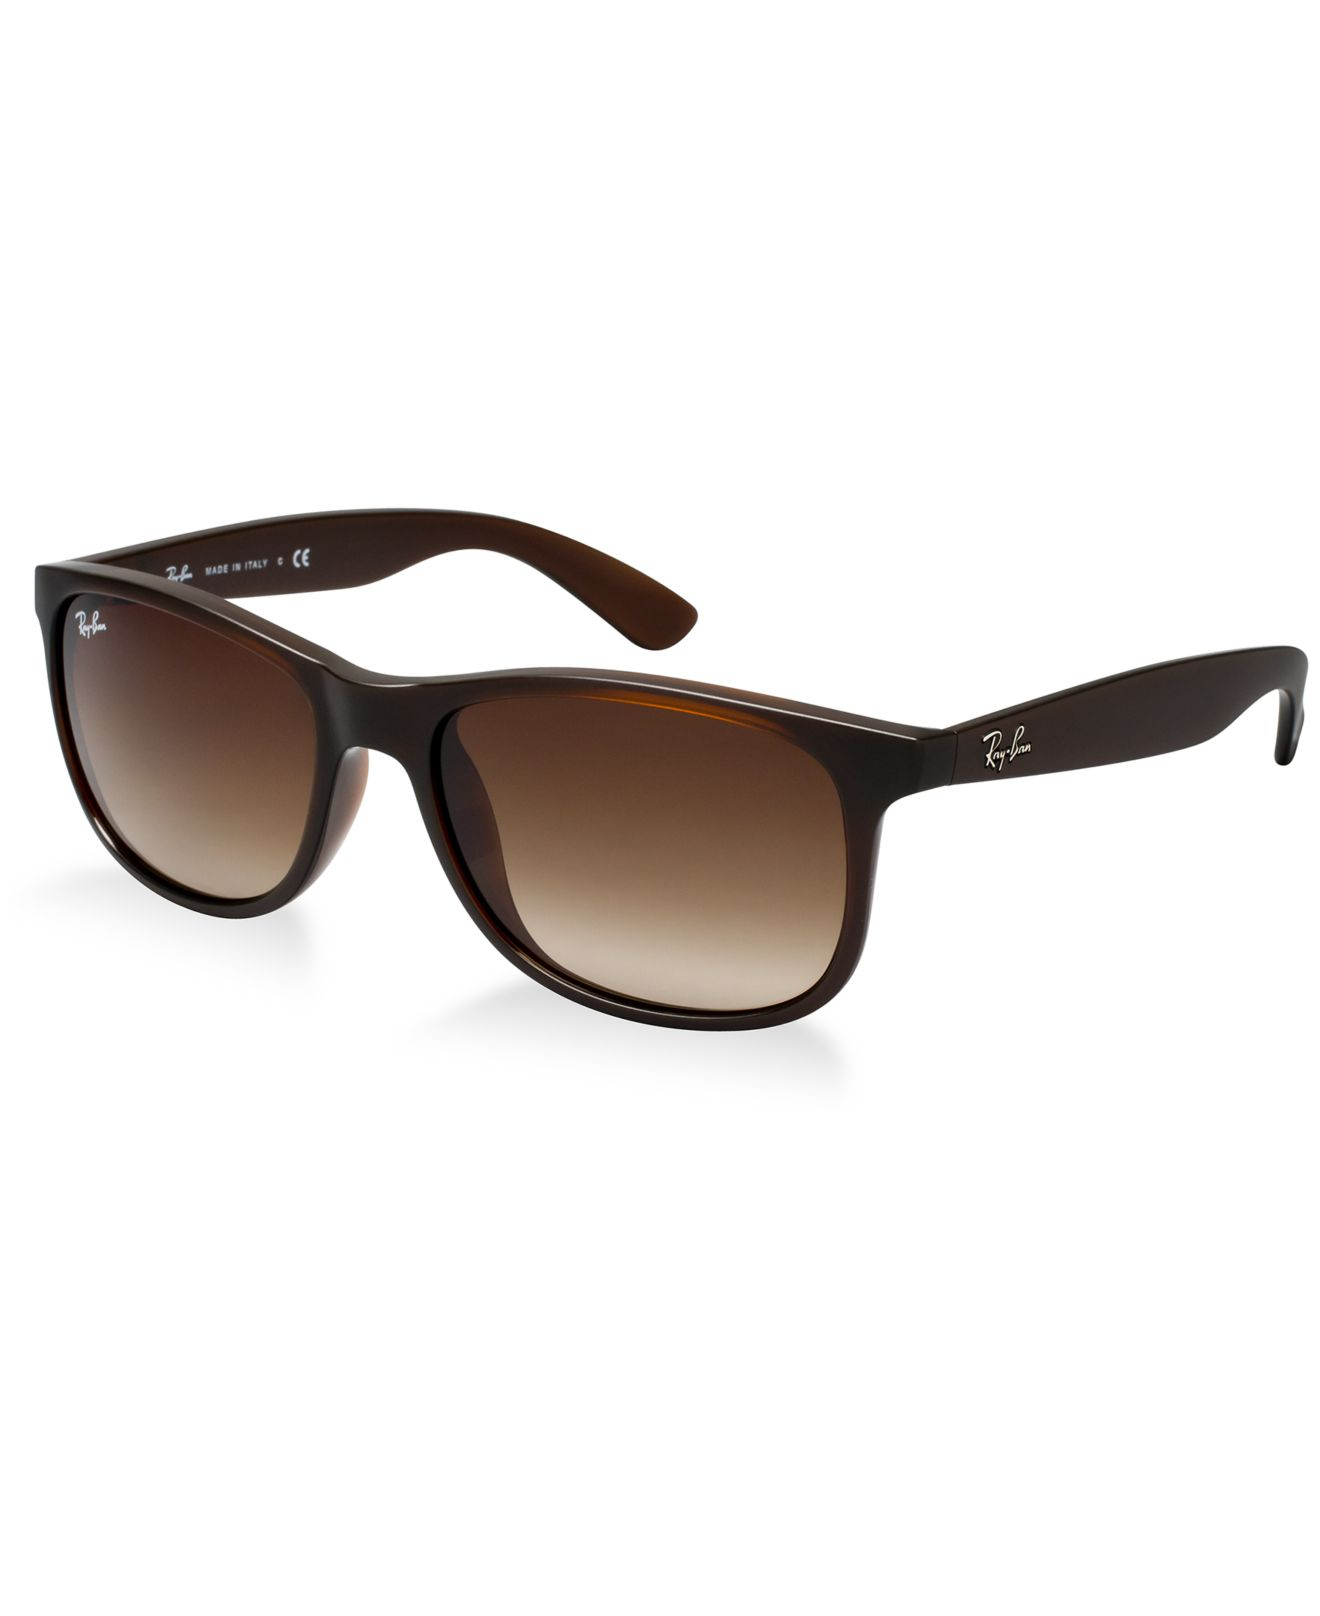 bb7bf423a1d Ray Ban Glasses Made In Italy « One More Soul